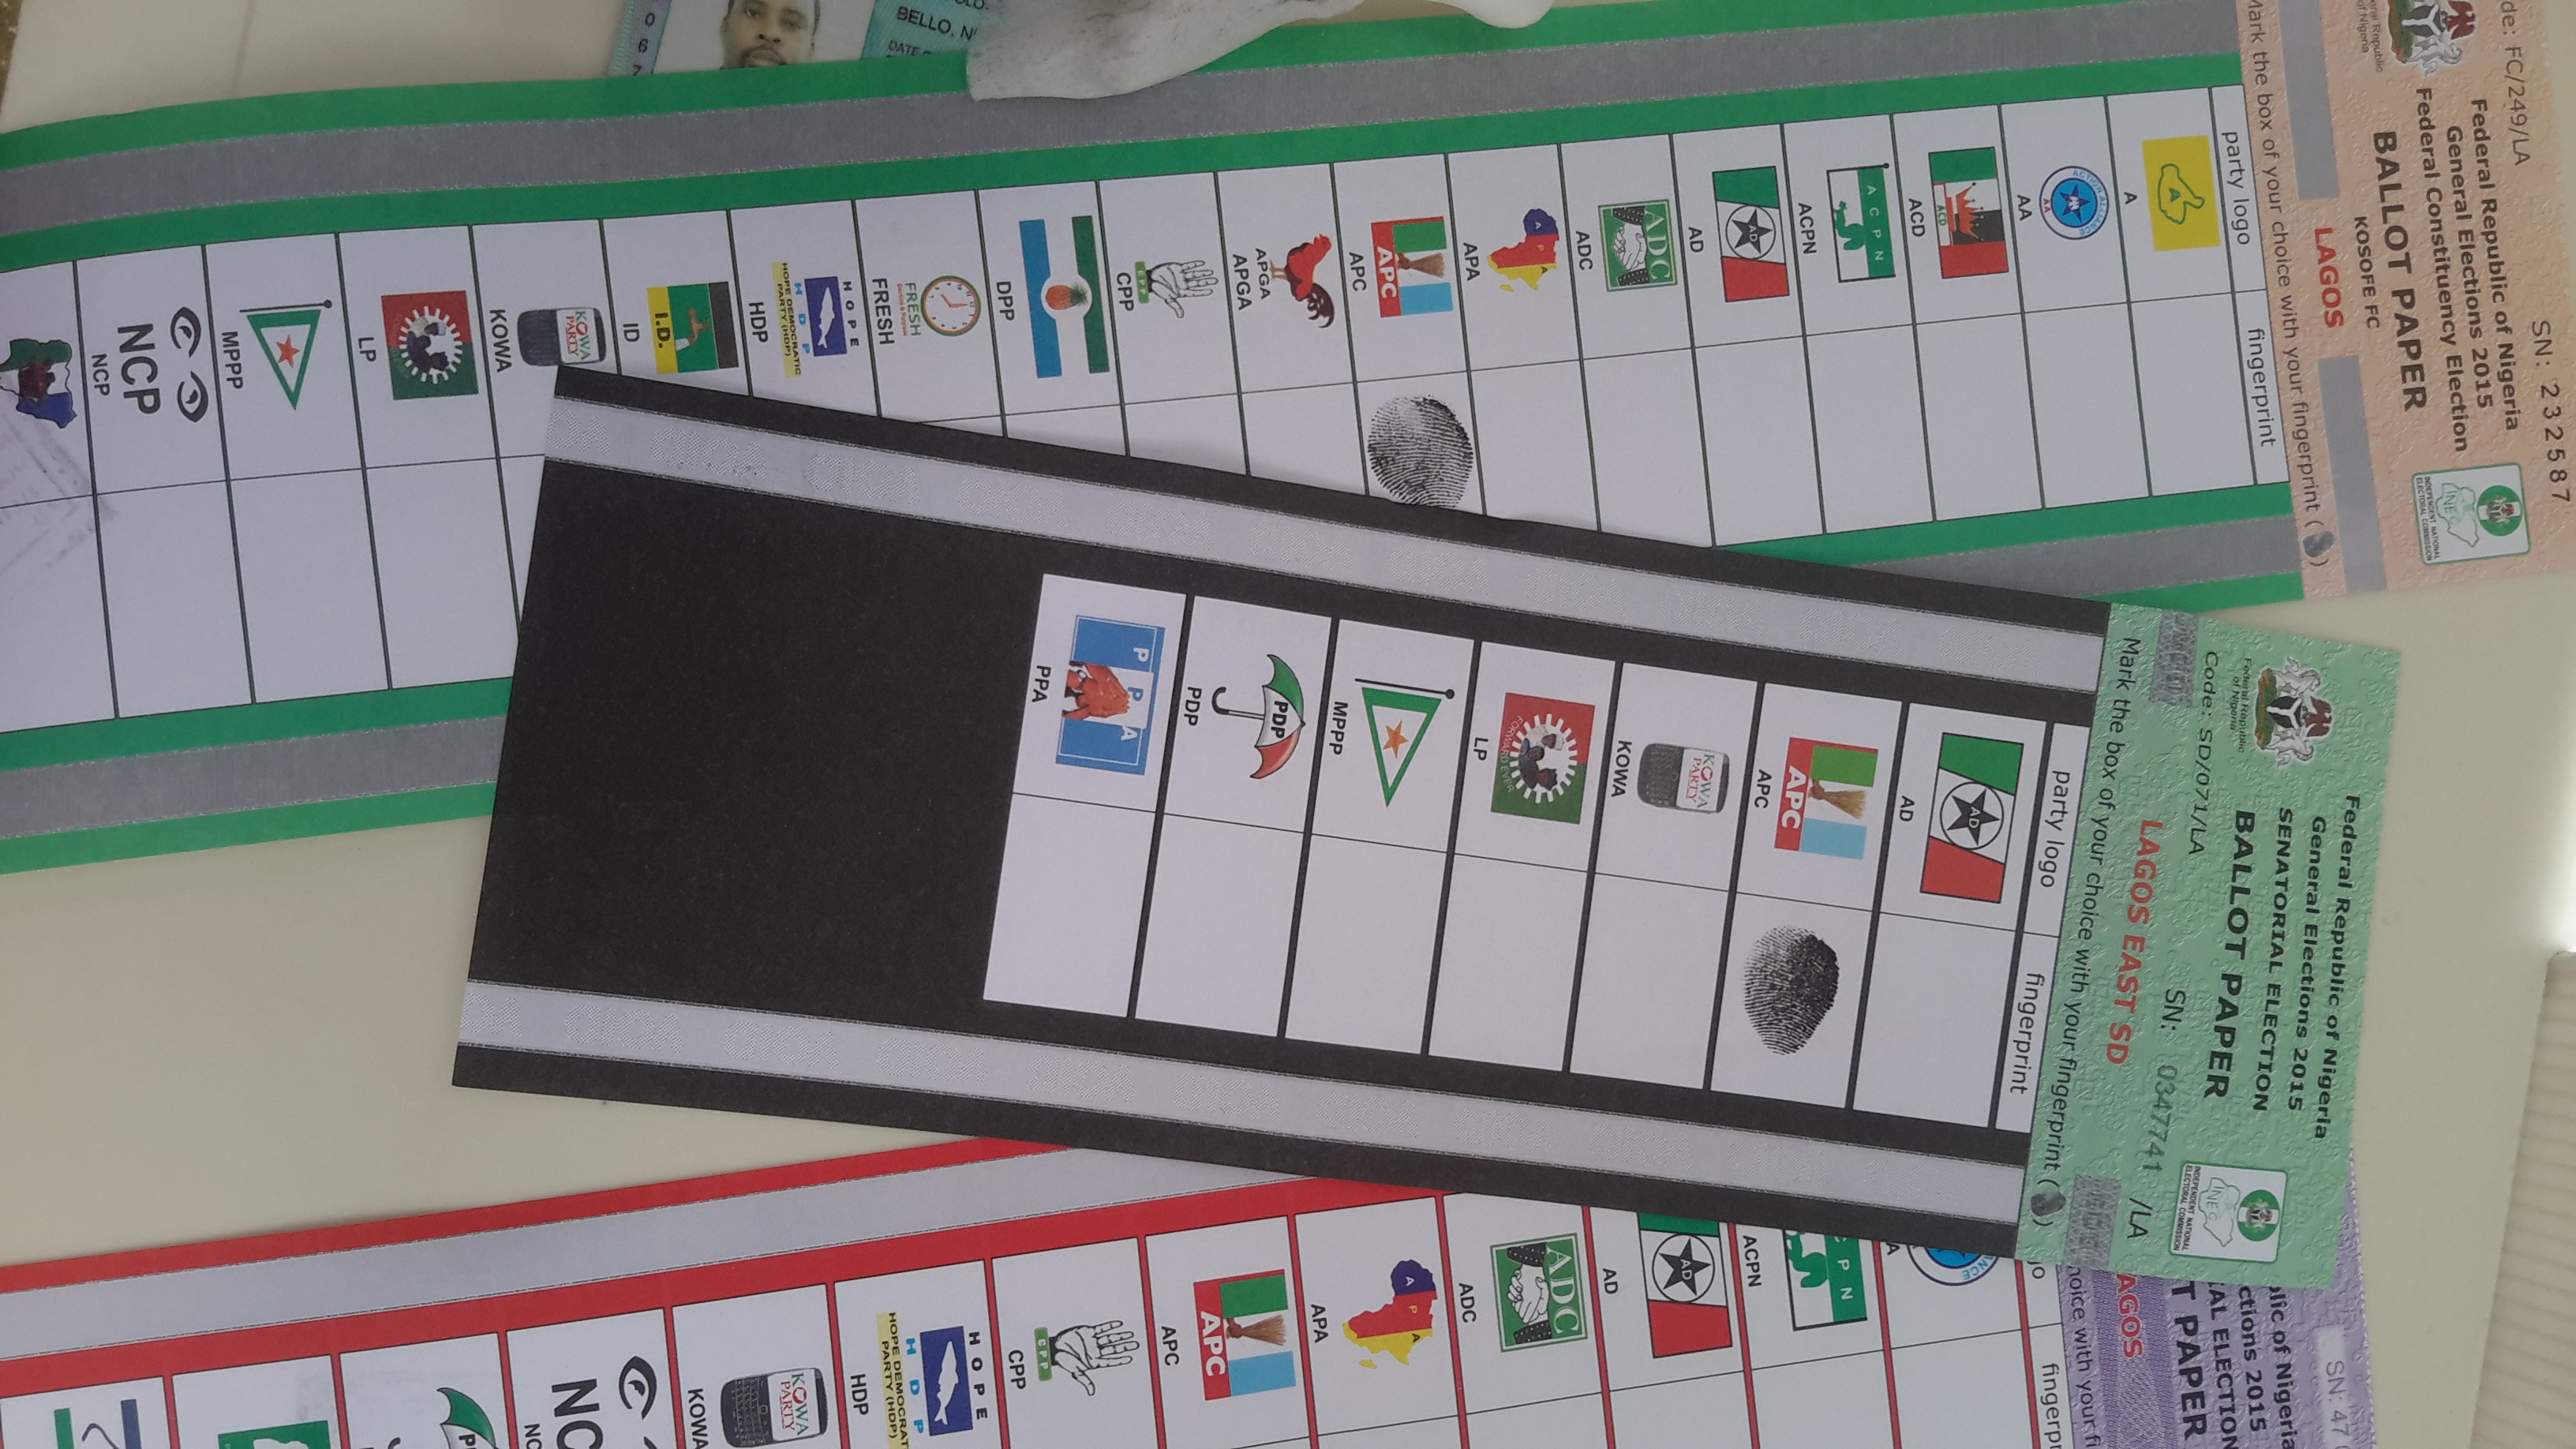 Ballot Papers - Source: Original picture from Nejeed Bello